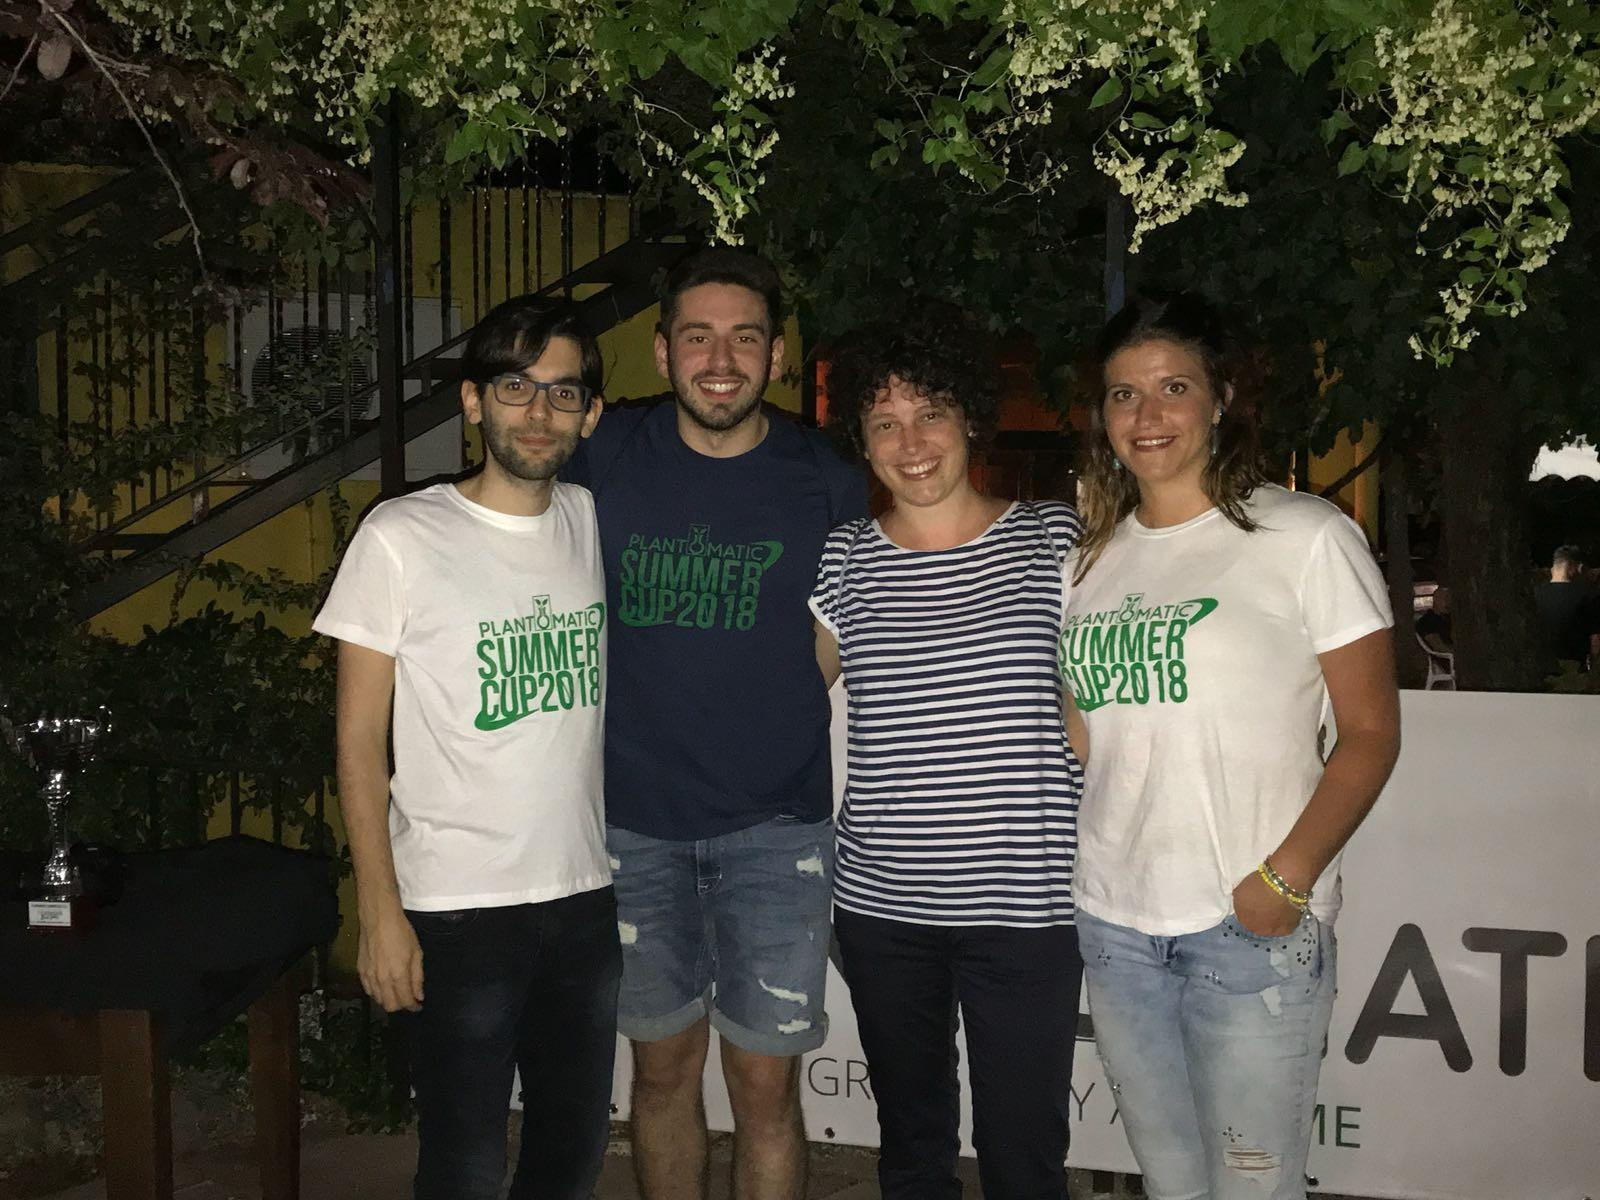 Plantomatic Summer Cup e 4° Memorial Mario Fanfarillo: un successo